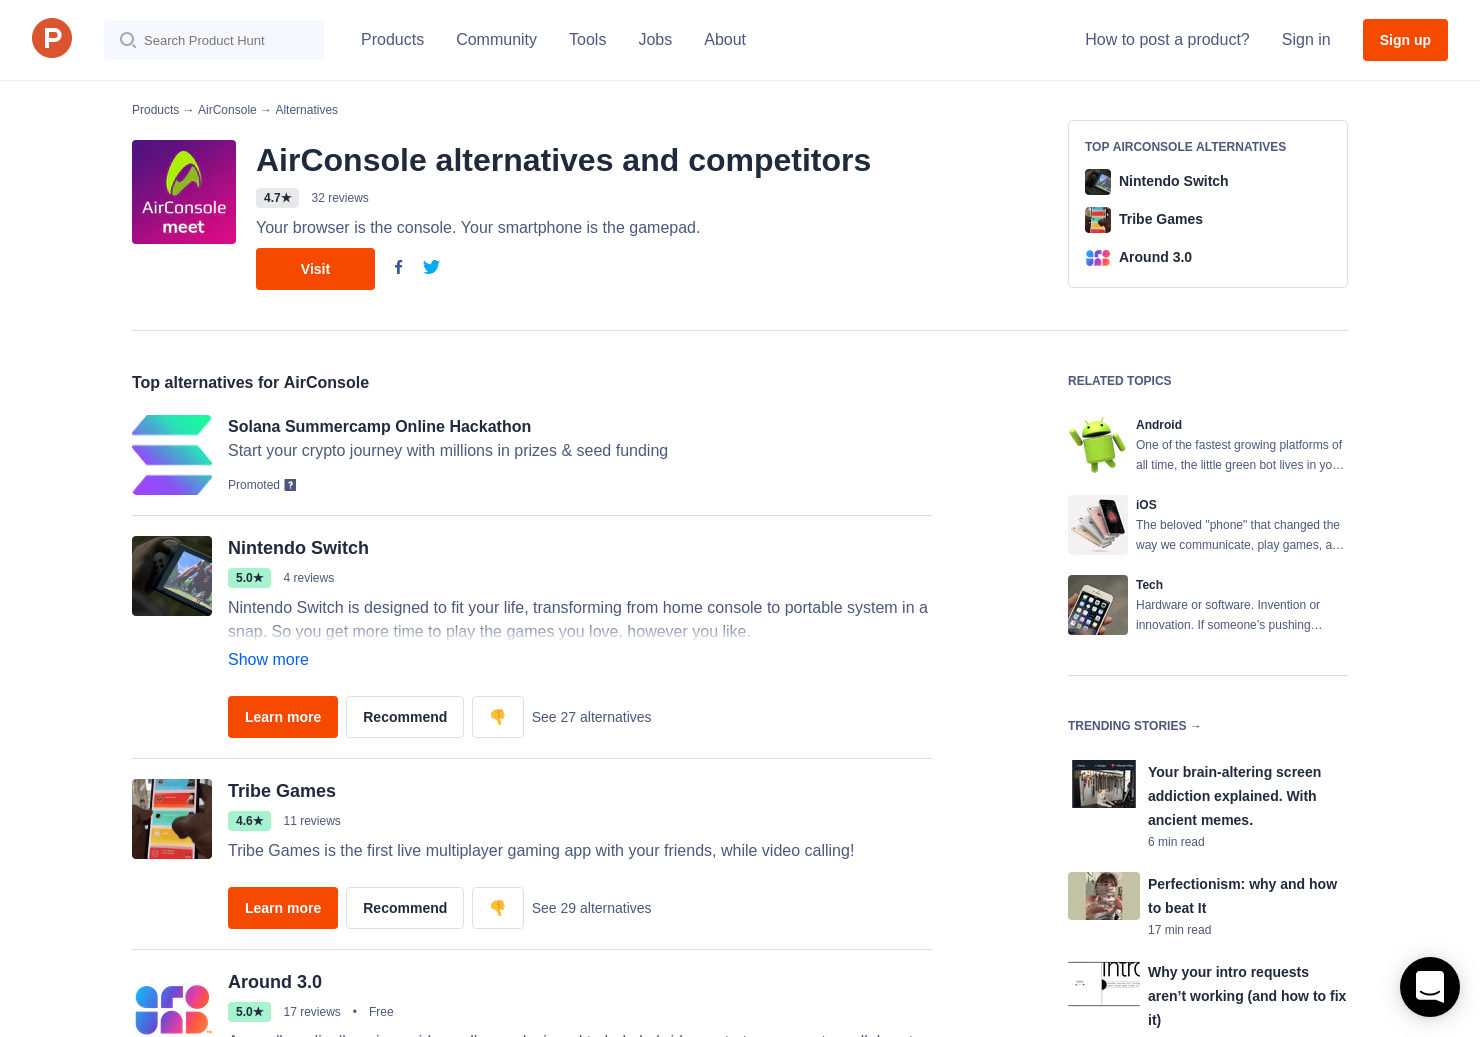 14 Alternatives to AirConsole 2 0 for Android, iPhone